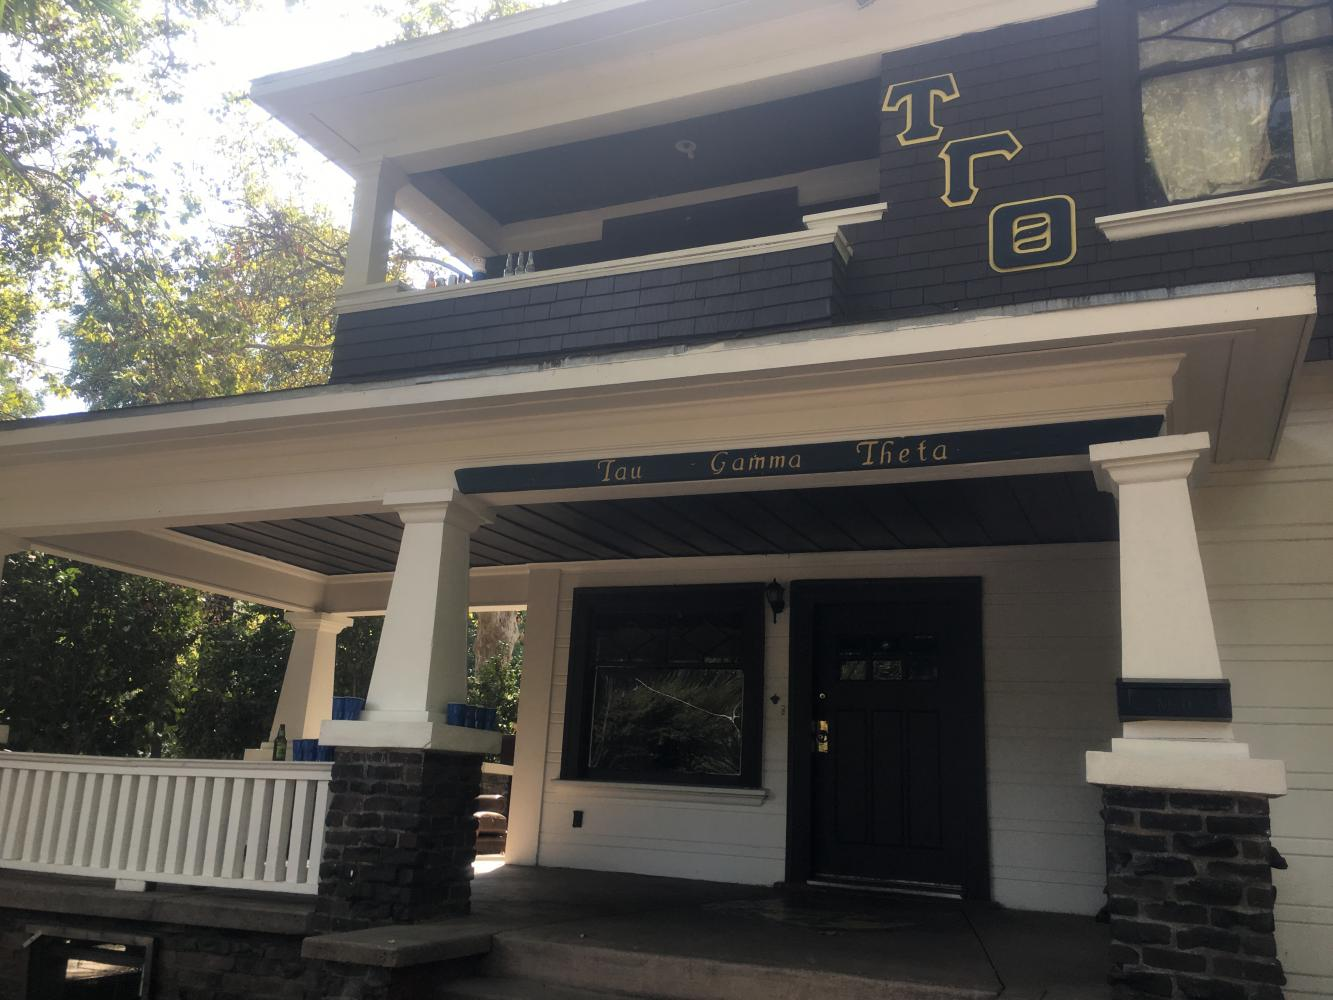 Police investigate Labor Day shooting at fraternity house